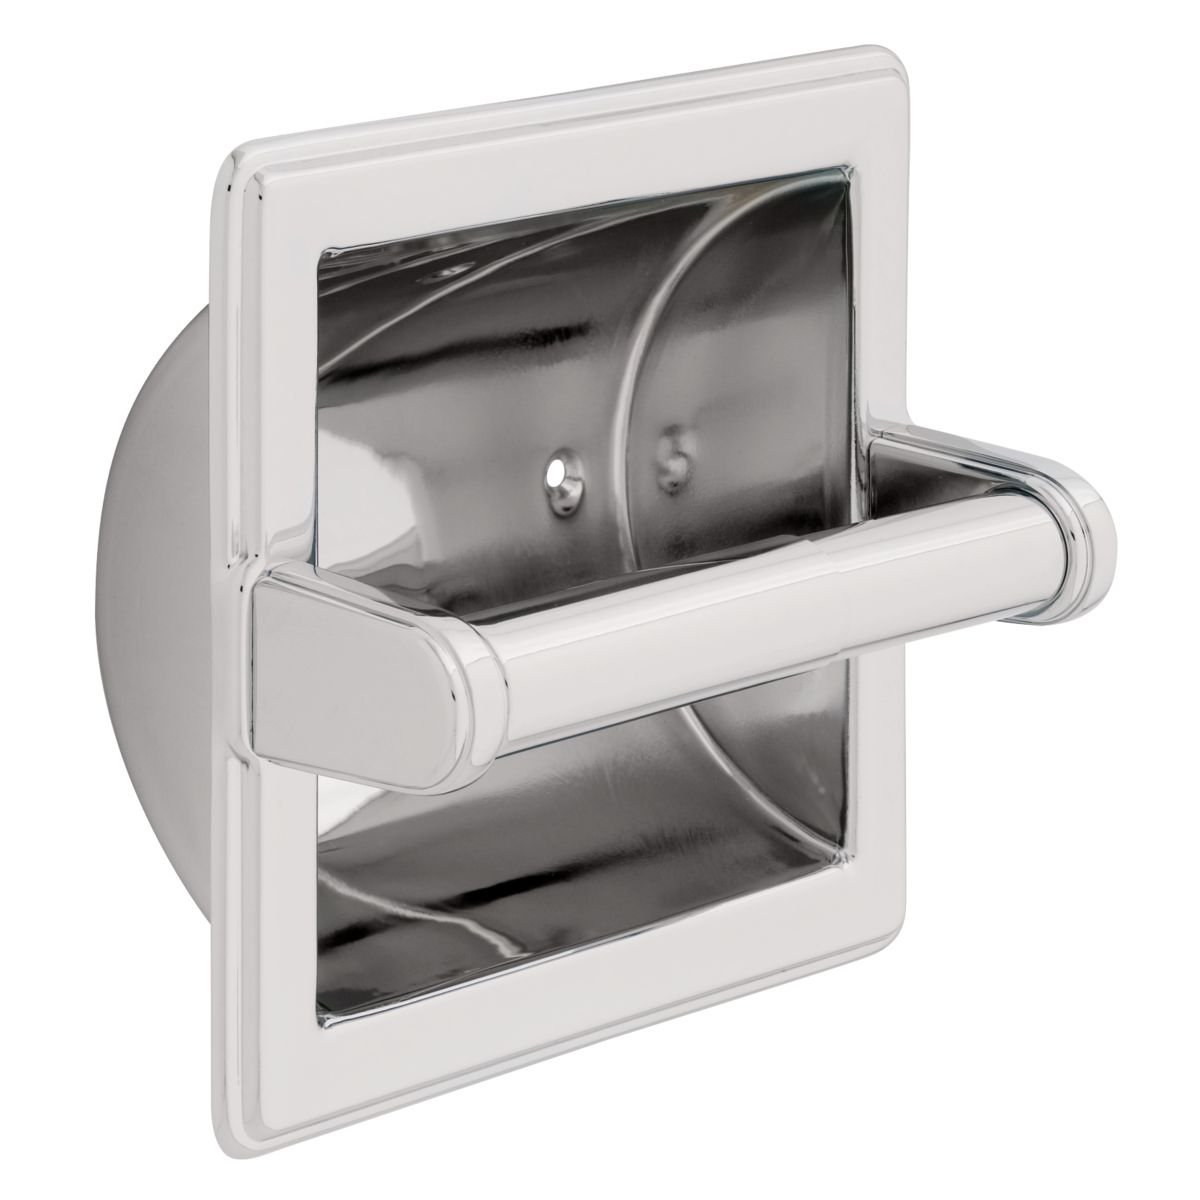 Franklin Brass 9097PC Recessed Paper Holder with Beveled Edges